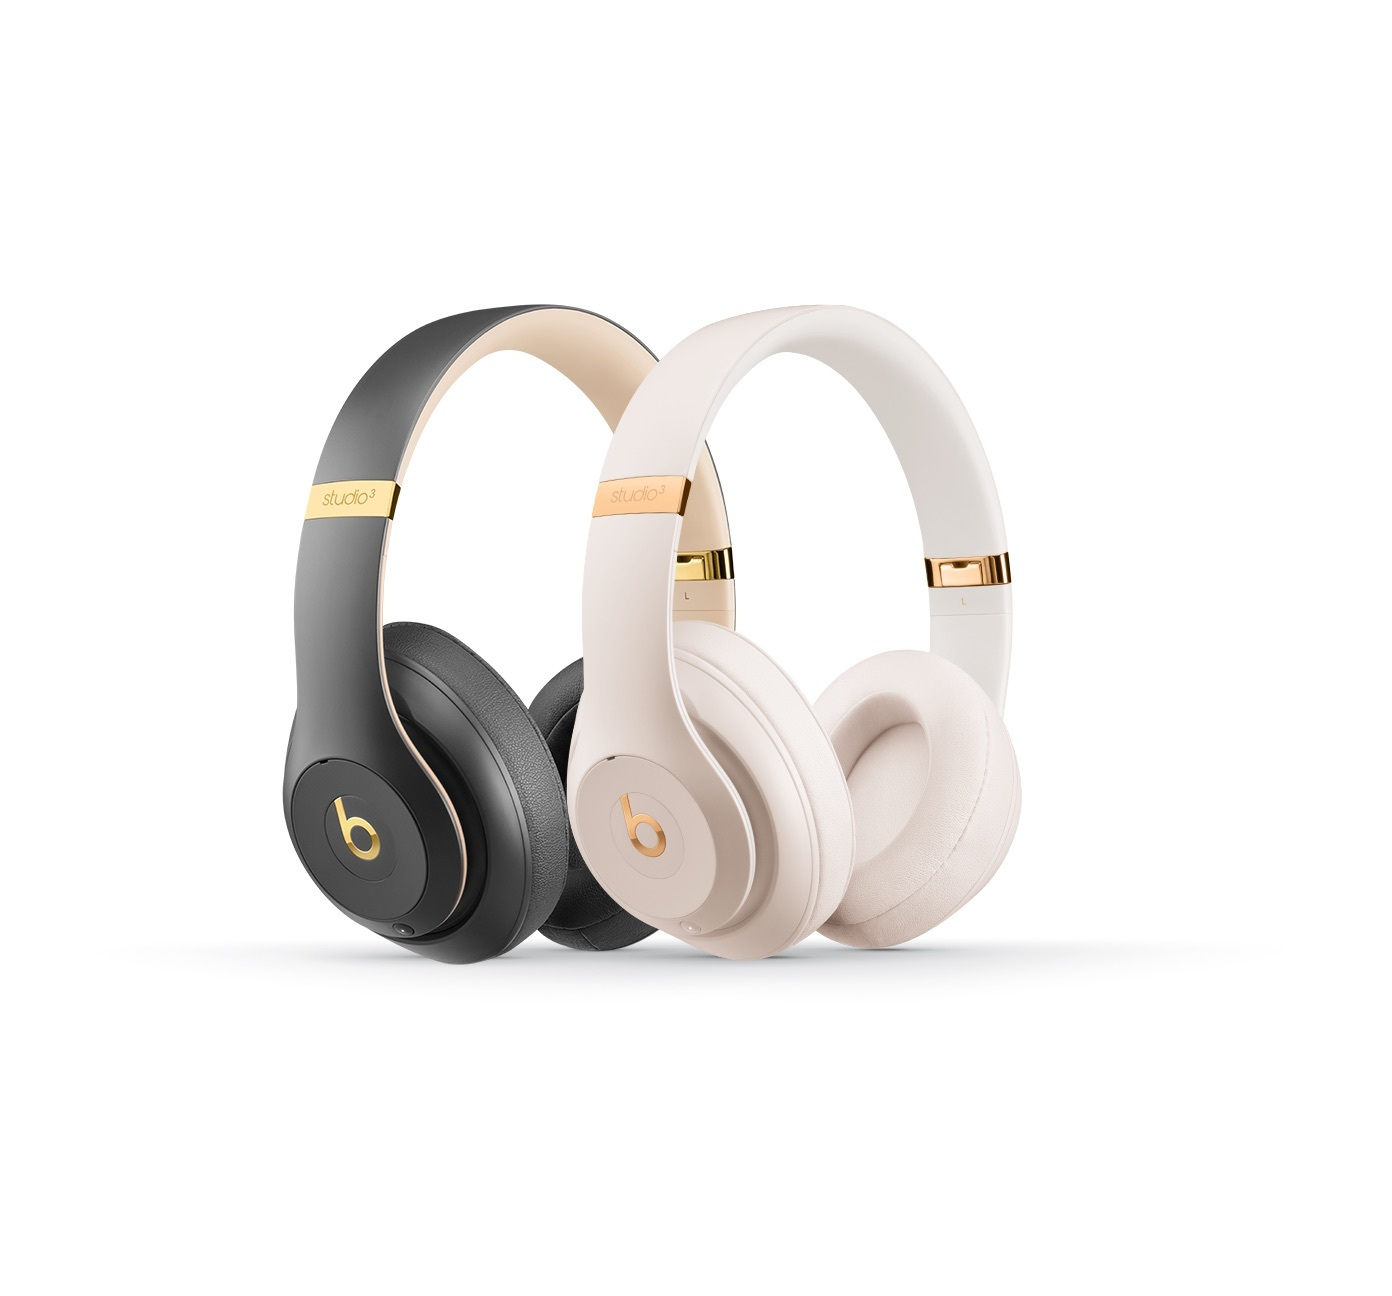 Beats By Dr Dre Launches Its Most Advanced Headphone Beats Studio3 Wireless Delivering An Incredible Sound Solution For Noise Canceling Headphones Business Wire